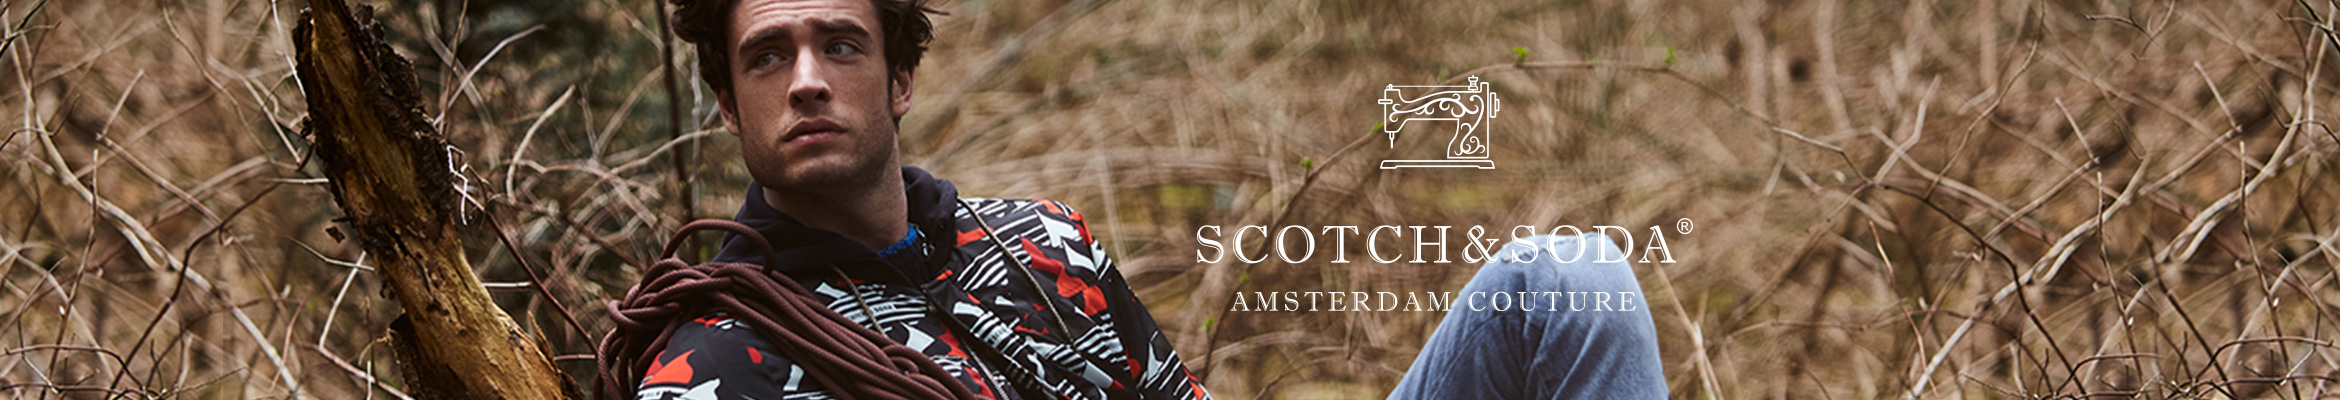 Scotch_soda_M